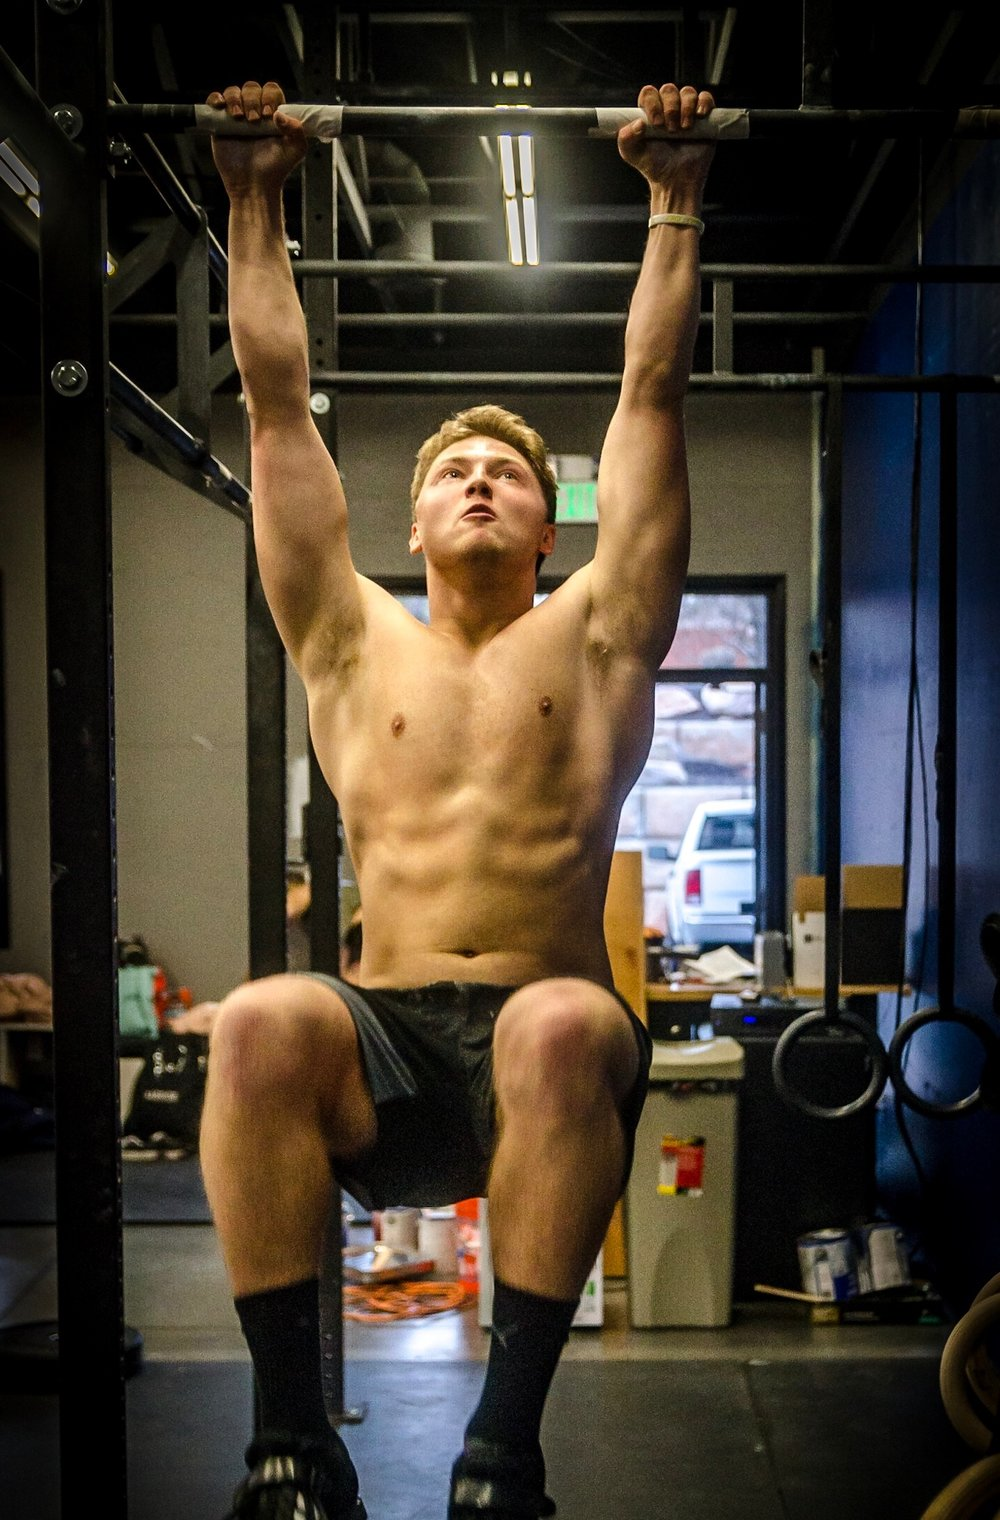 MUSTO - Crossfit Level One / USAW Level TwoMusto is a junior at Southern Utah University studying to become a world renowned Strength and Conditioning coach. He is a former college athlete and absolutely loves coaching people and making a positive impact on peoples lives.